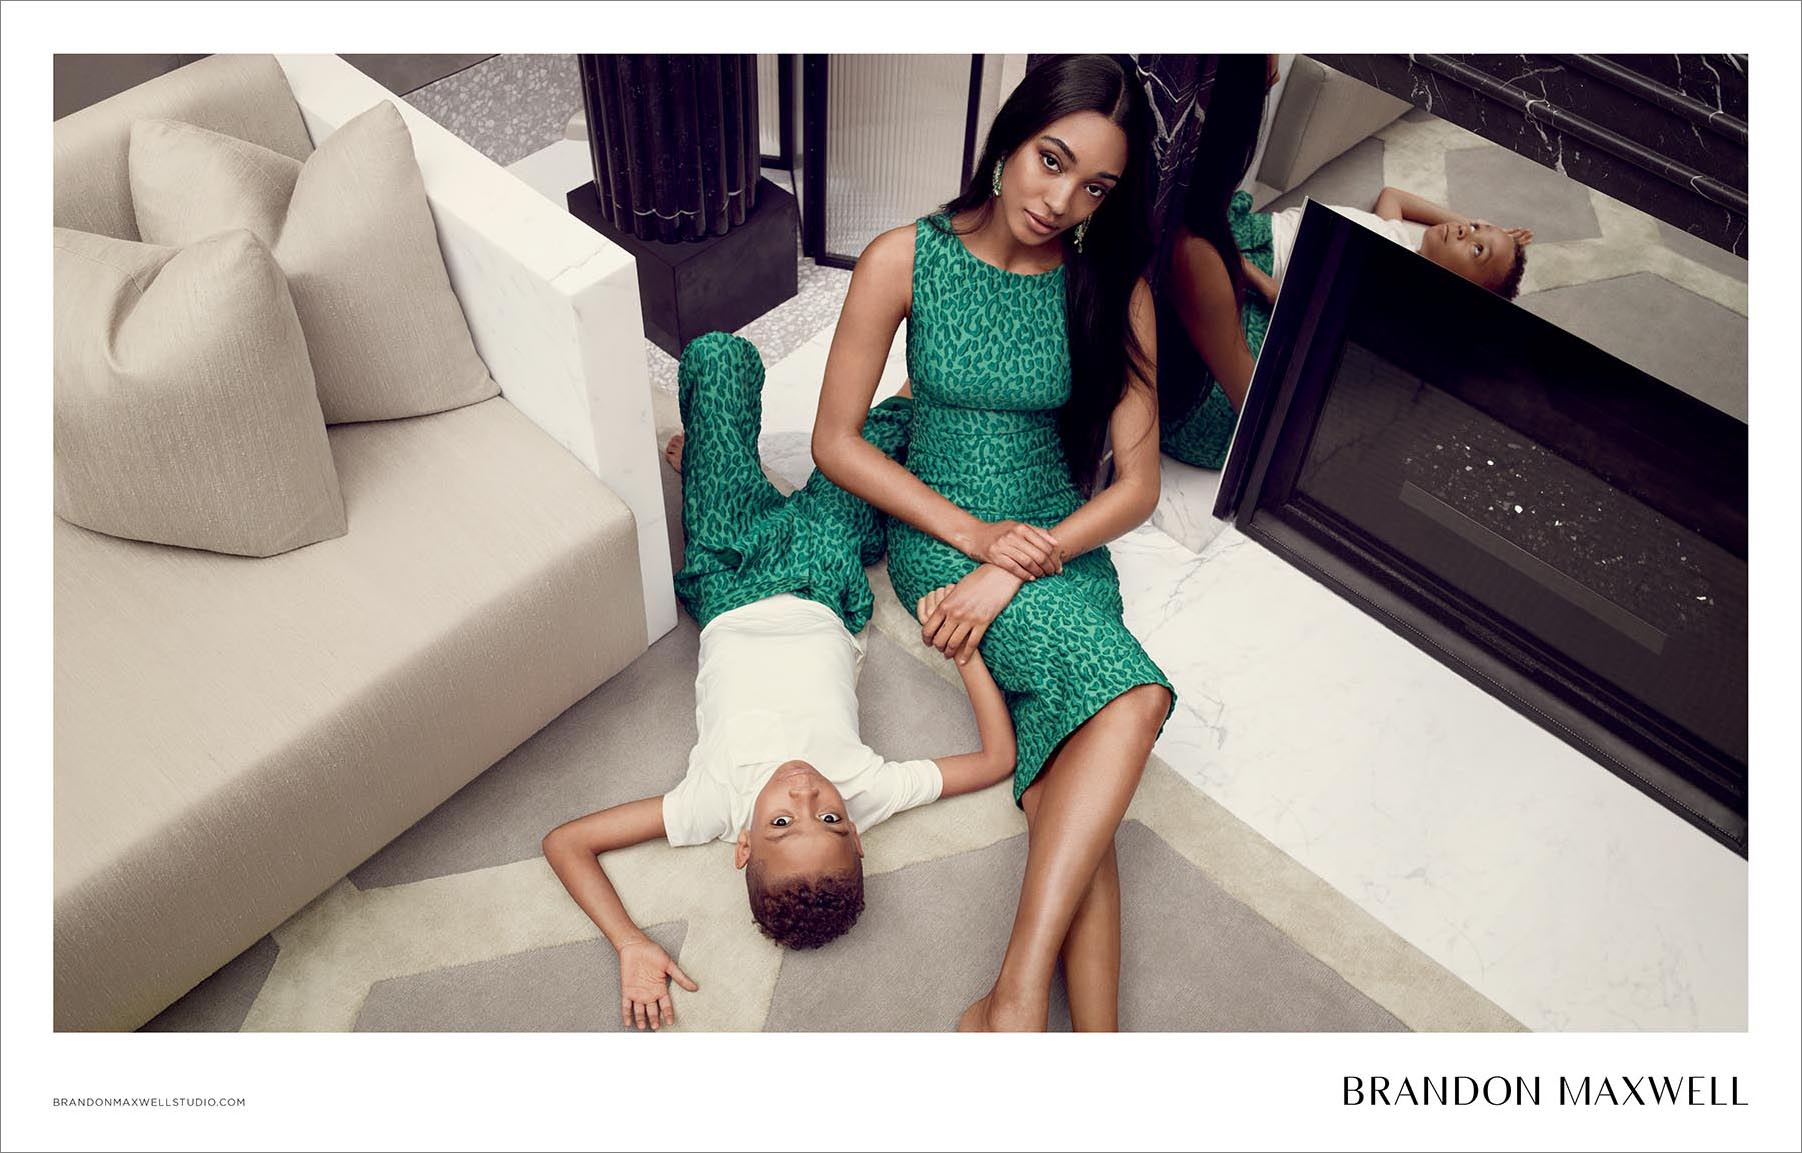 Brandon Maxwell features Jourdan Dunn in Spring 2018 Ad Campaign